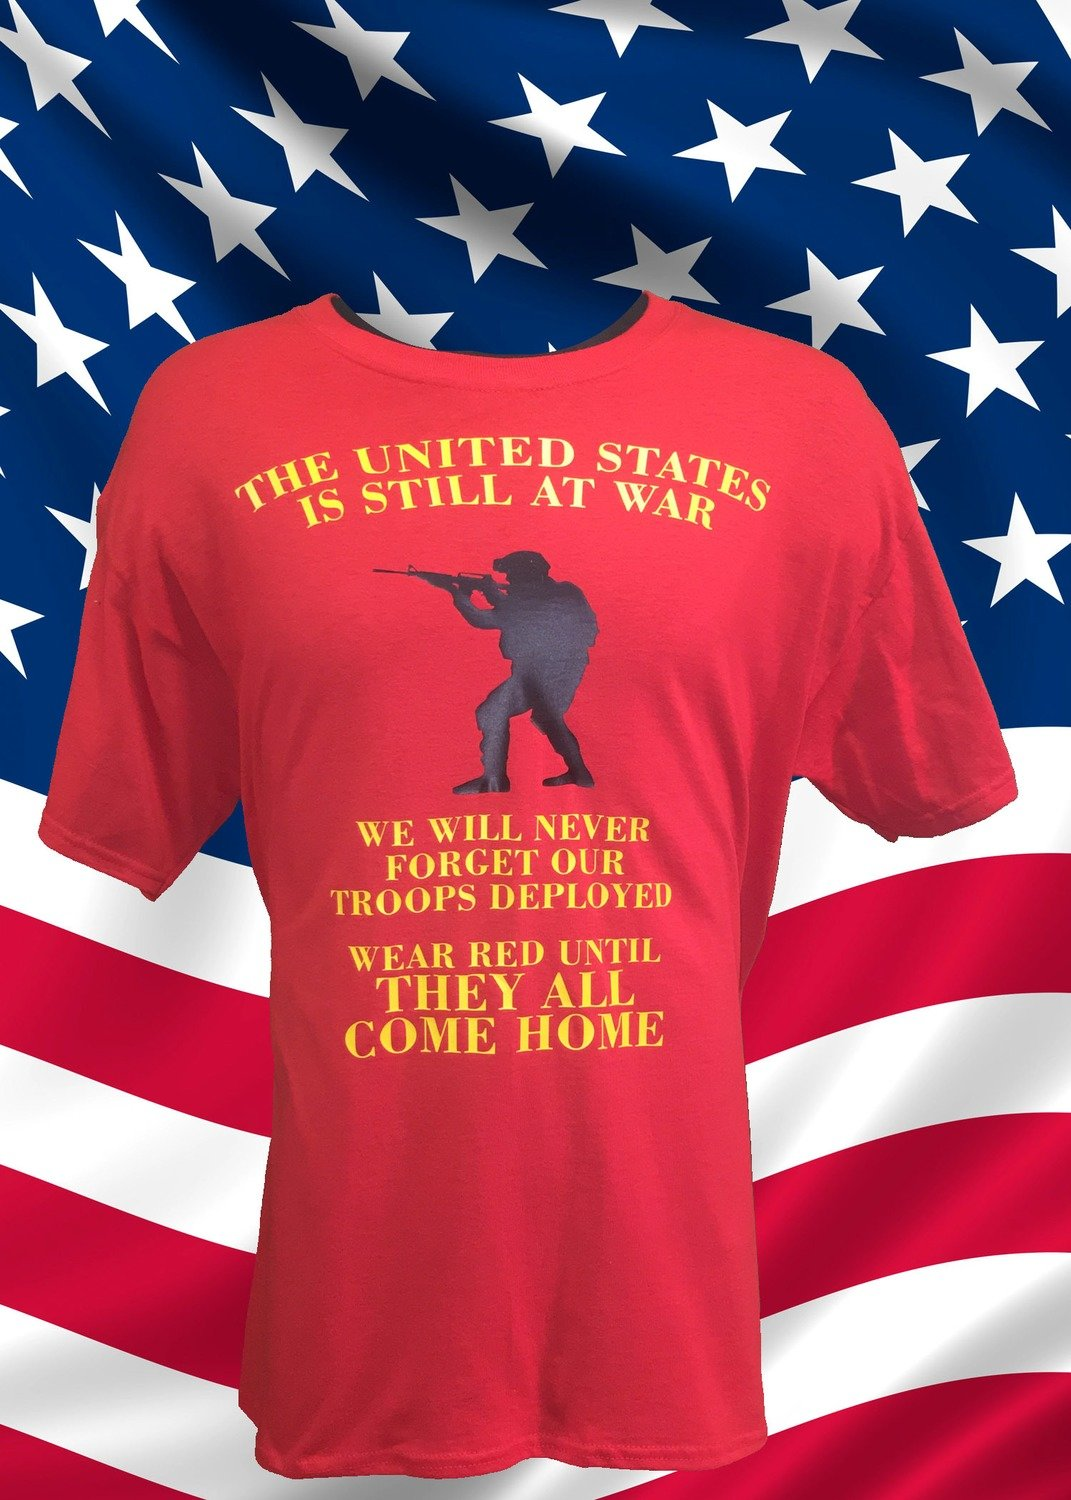 Wear Red For Our Military Until They All Come Home